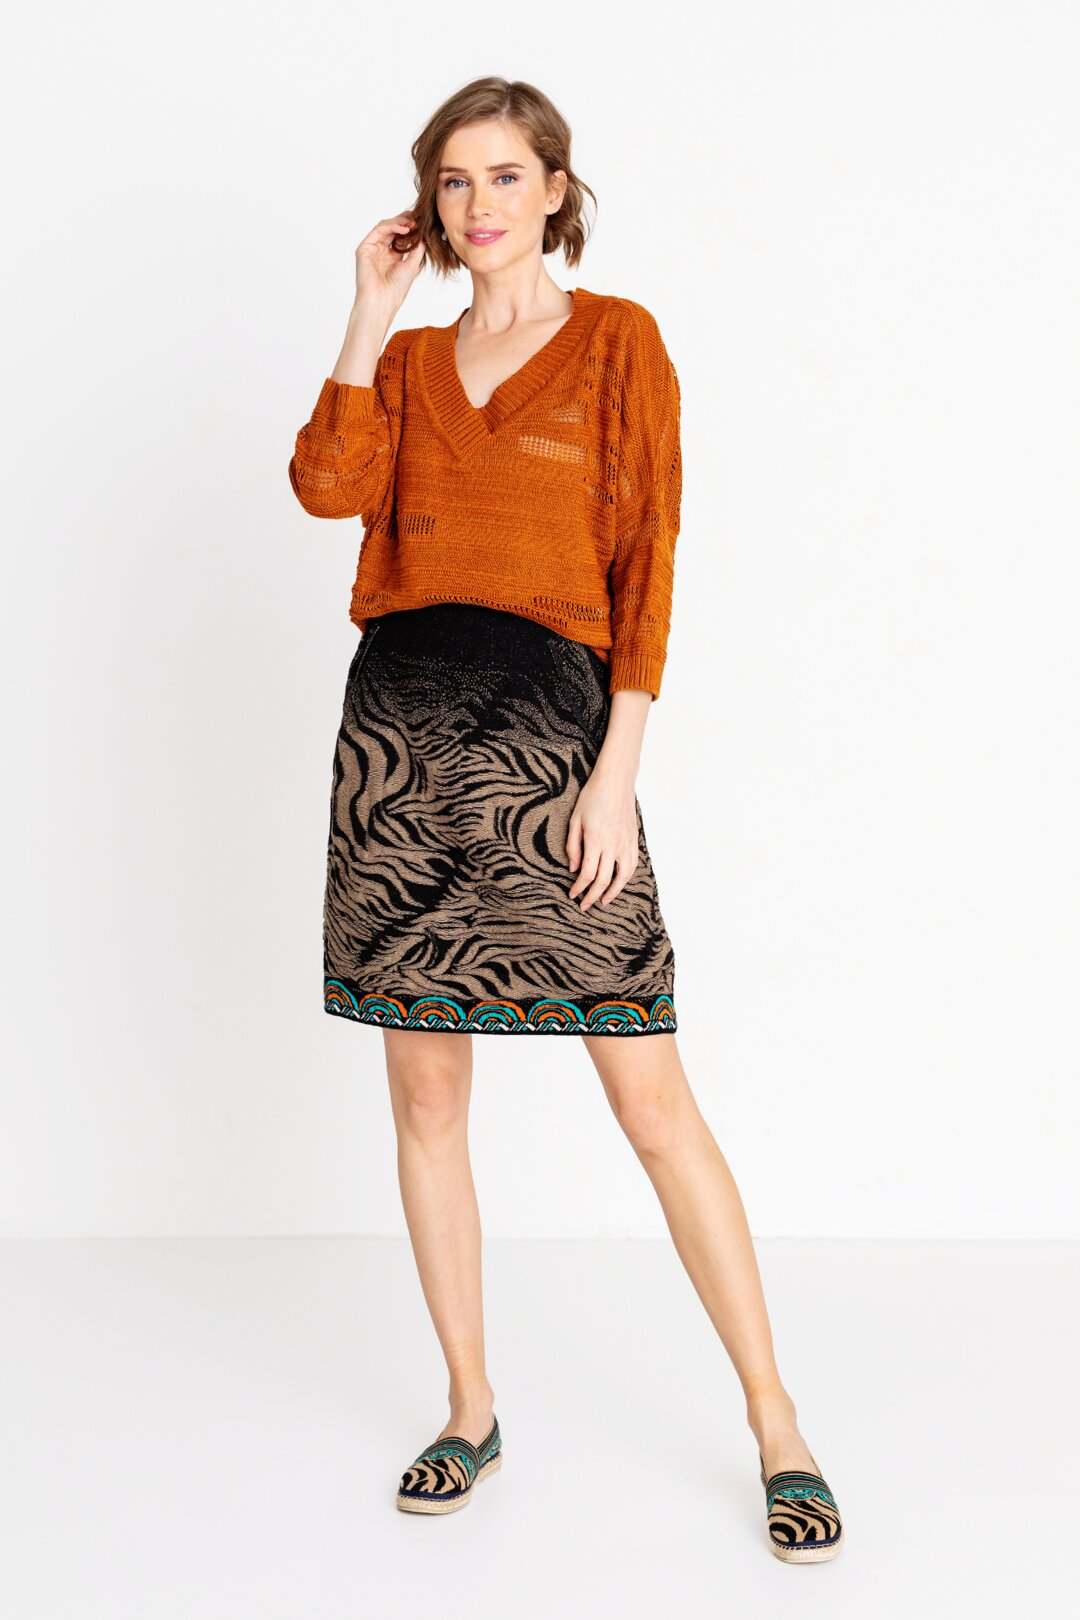 outfit-211651019a